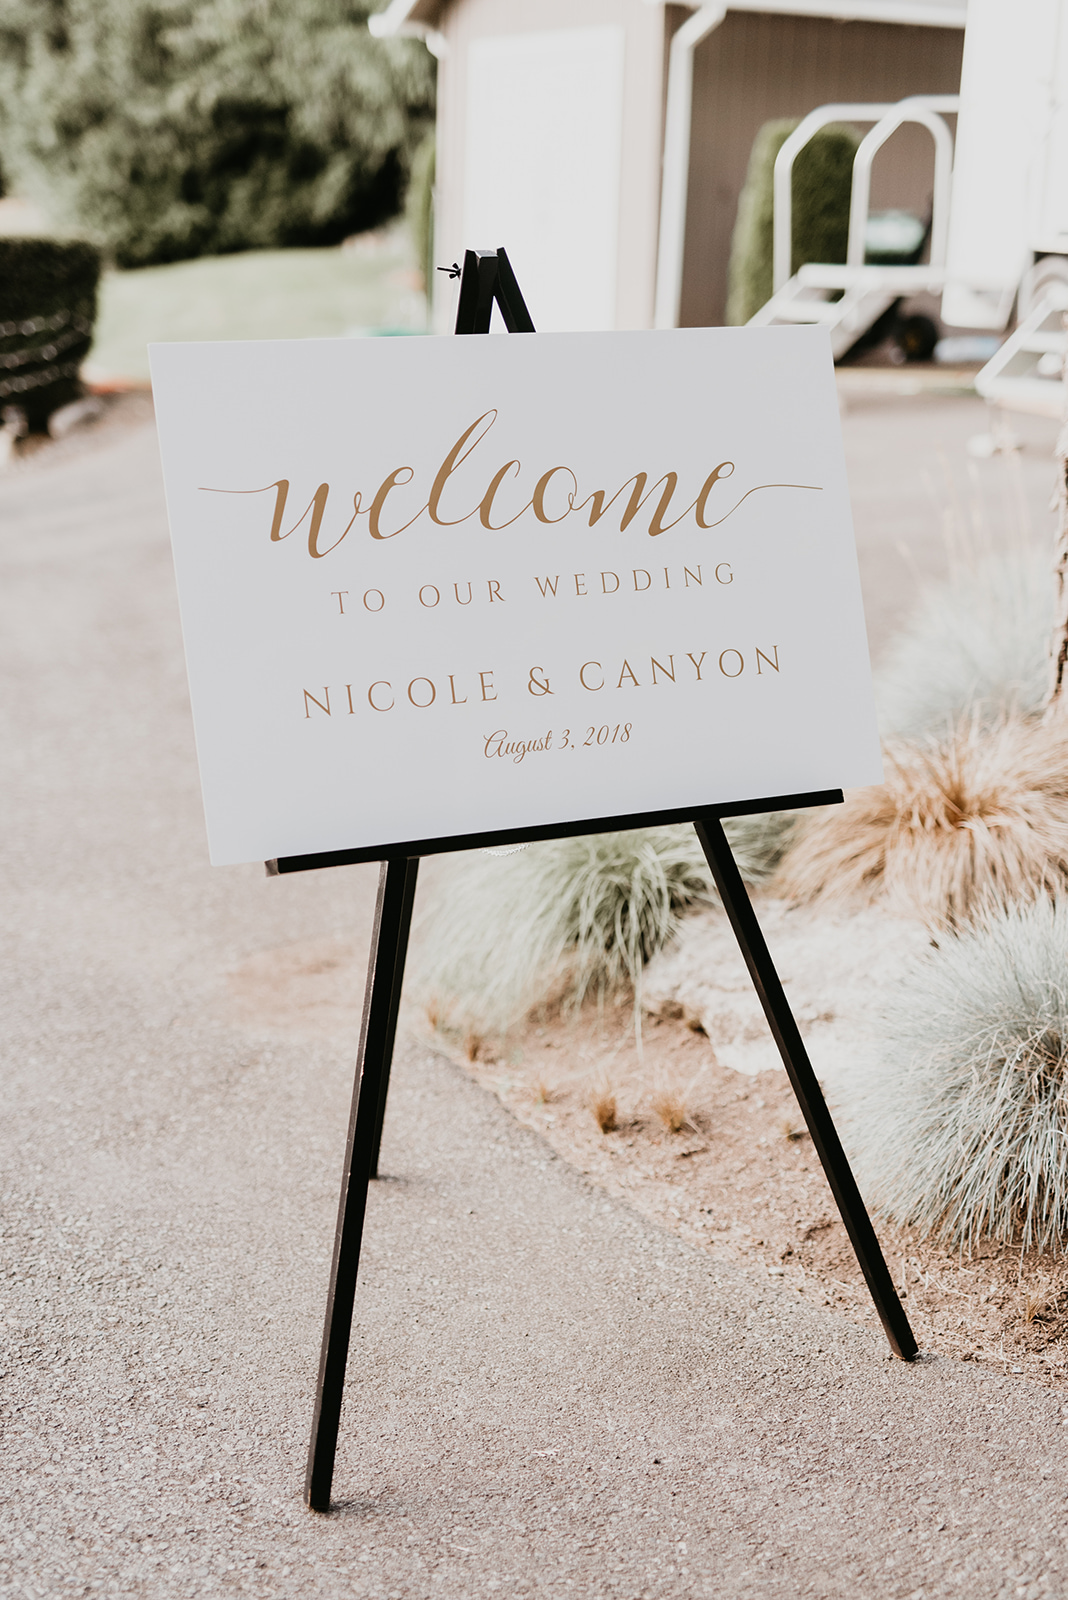 Thompson Wedding in Seattle, Washington - Bride sign